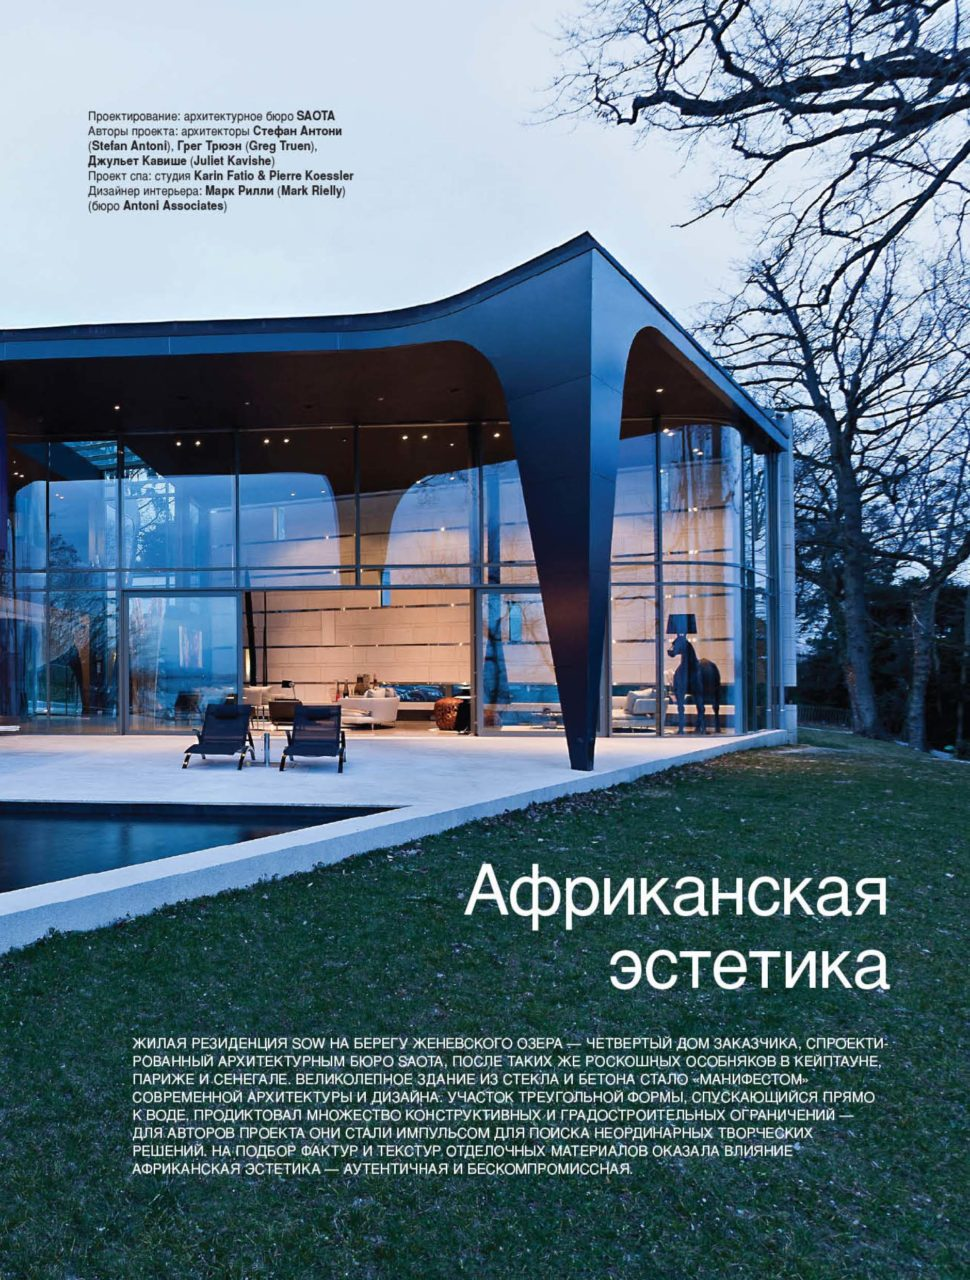 http://www.saota.com/wp-content/uploads/2018/01/2013_March_BeautifulHouses_SAOTA_Lake-House-1-editorial_cover.jpg